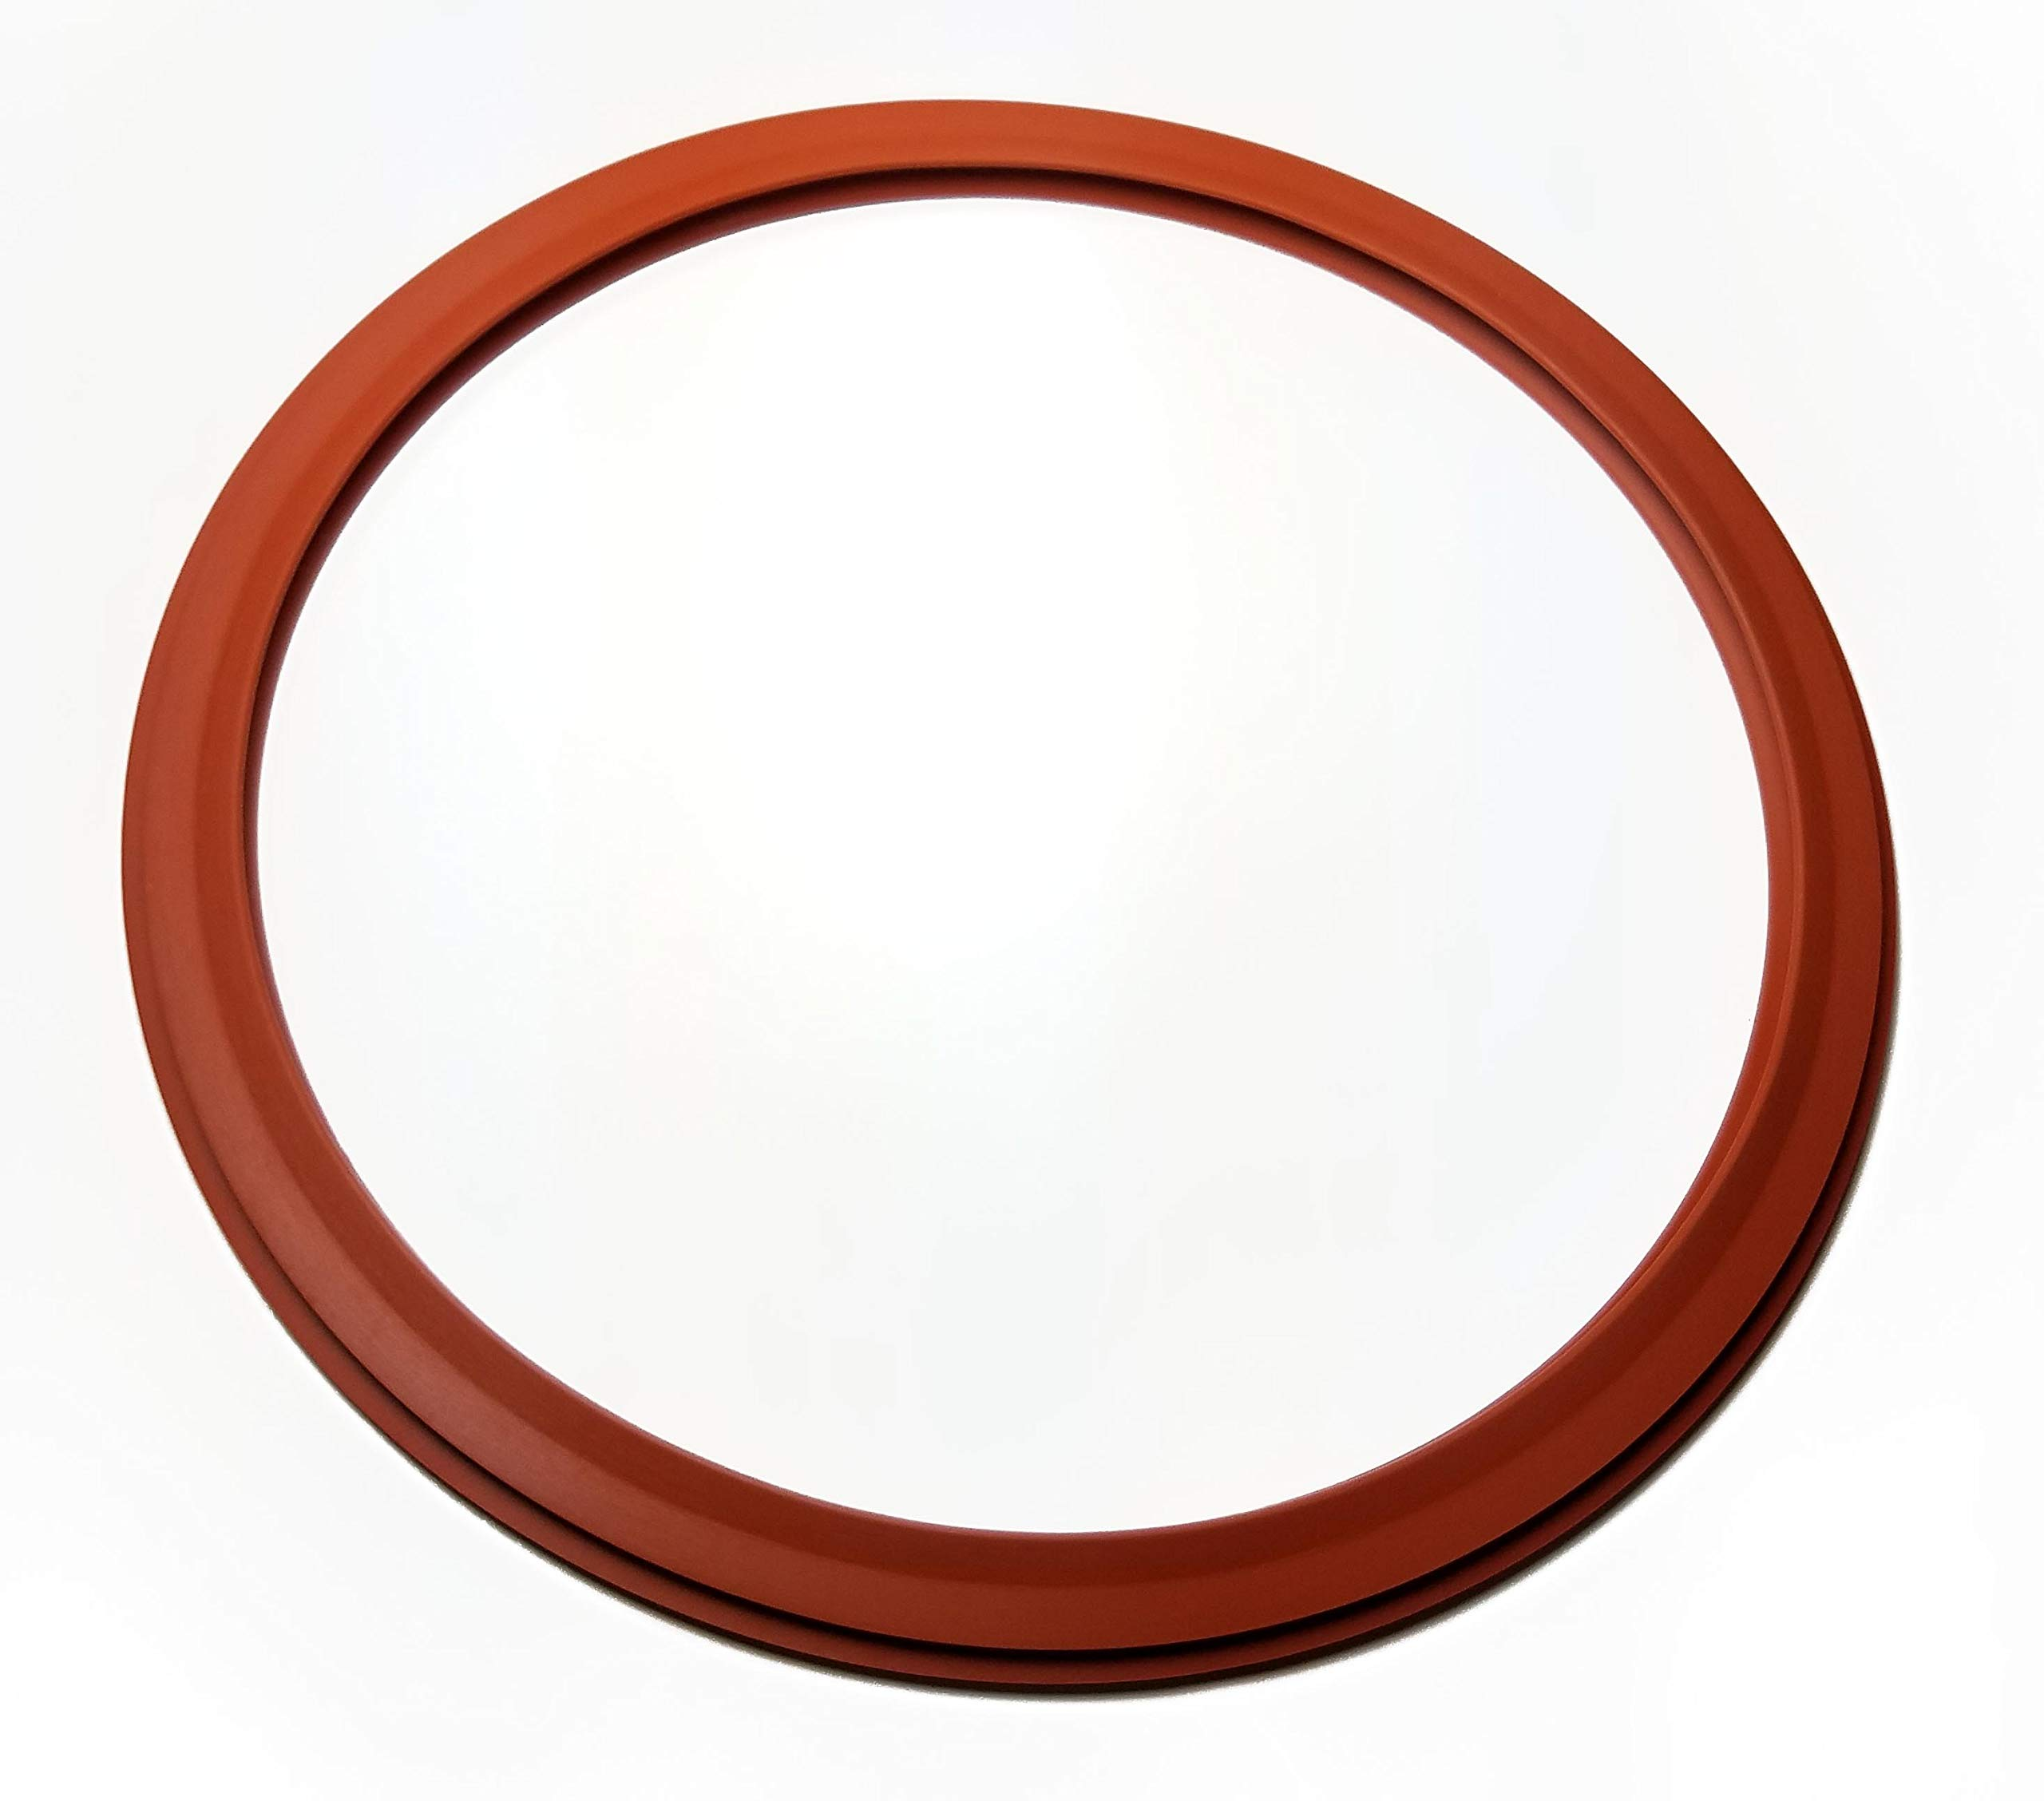 Autoclave Gaskets Brand Compatible Door Gasket for Pelton & Crane OCM by Autoclave Gaskets